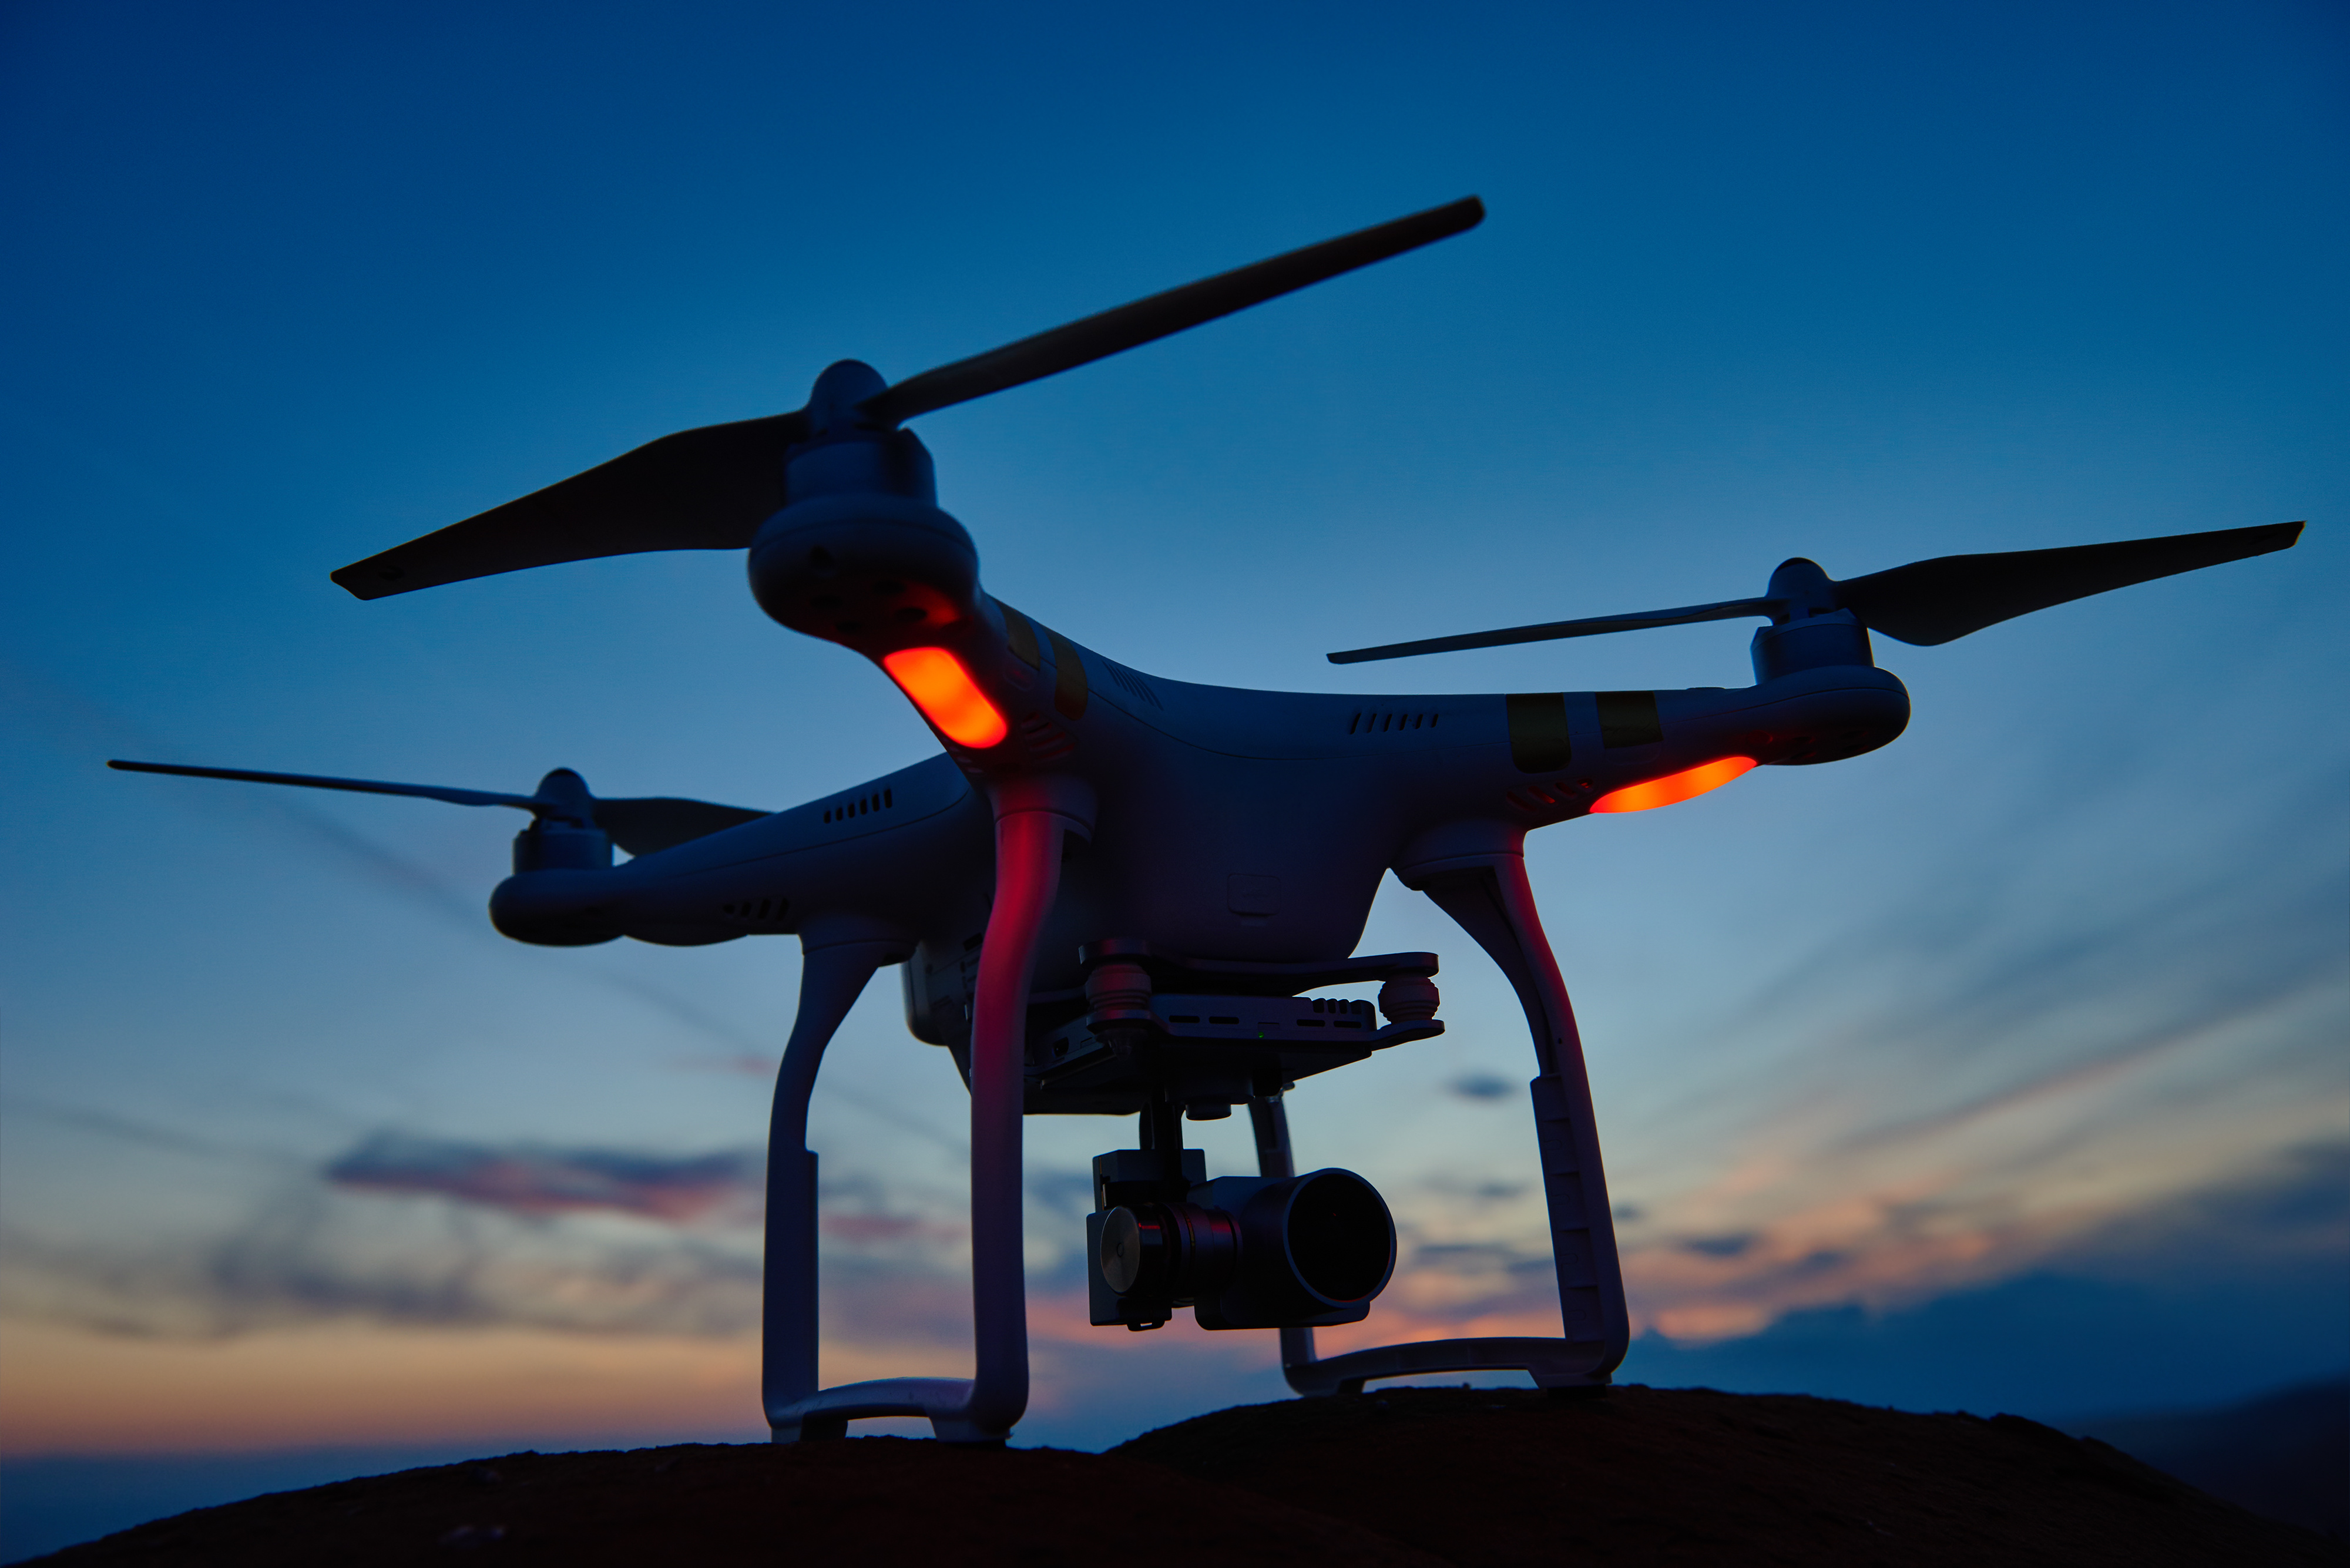 drone quadrocopter with high resolution digital camera ready to fly at sunset in